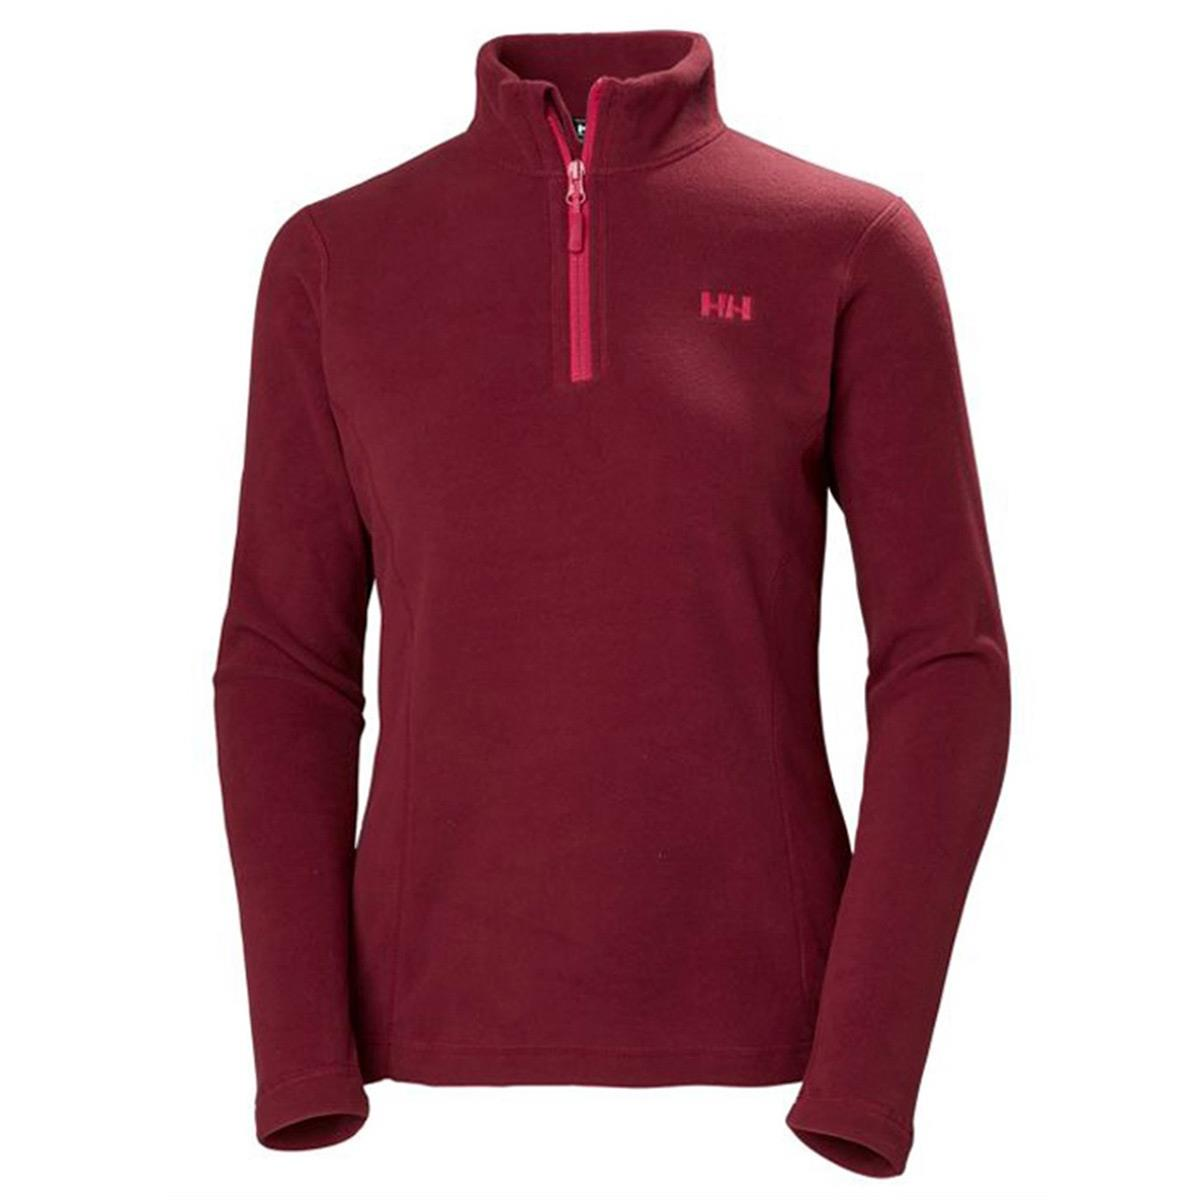 Helly Hansen HH SLOPE POLAR FLEECE Cabernet HH15001